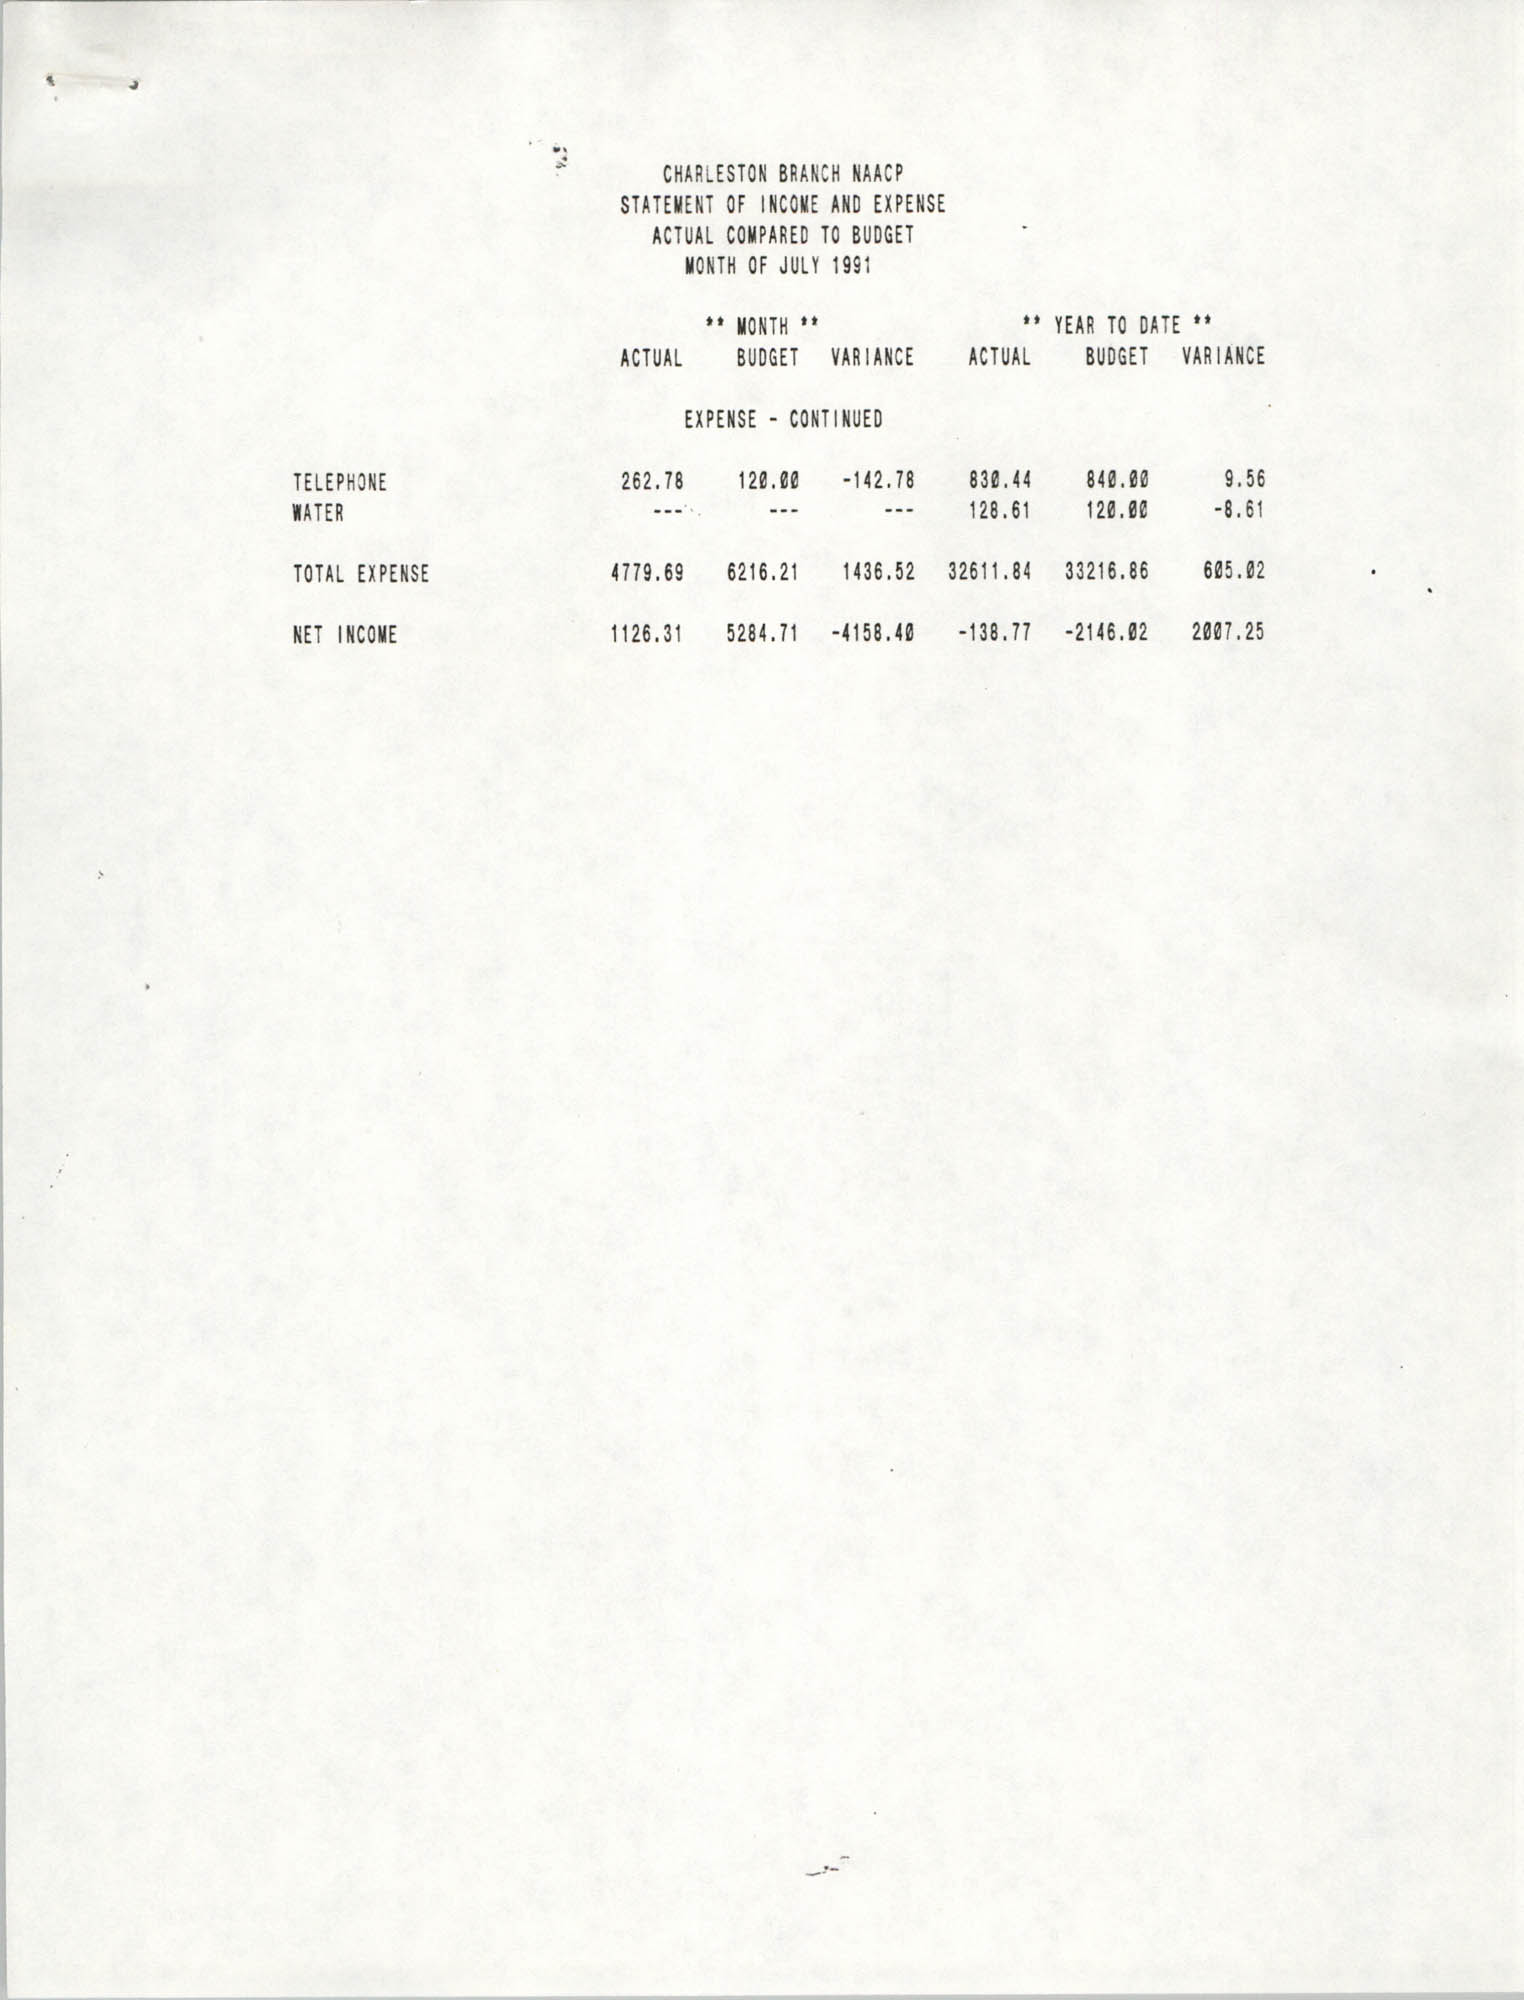 Charleston Branch of the NAACP Statement of Income and Expense, July 1991, Page 2